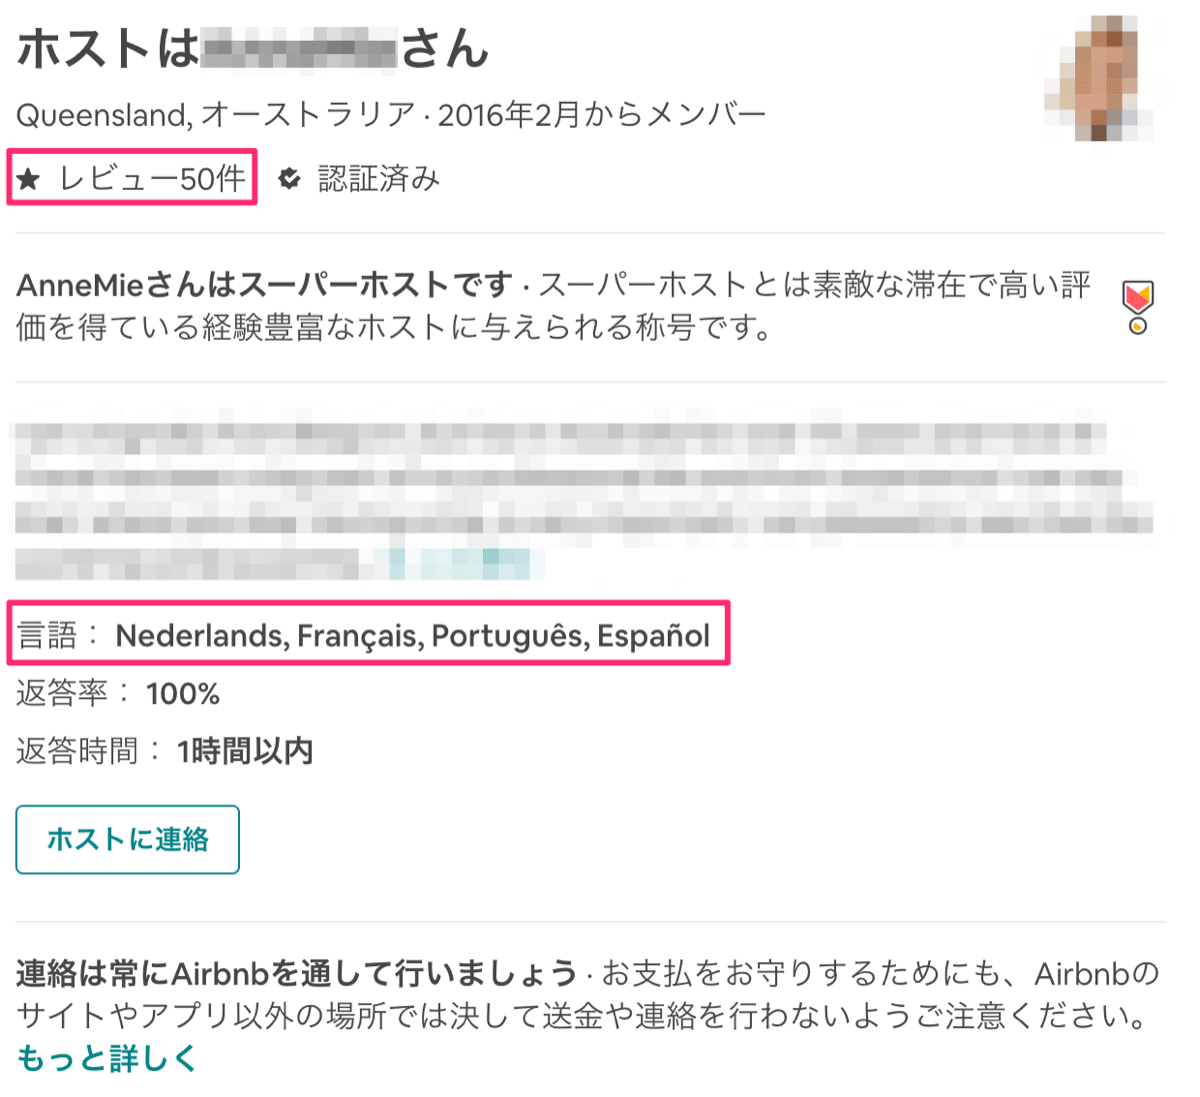 Airbnb howto 24ホスト情報